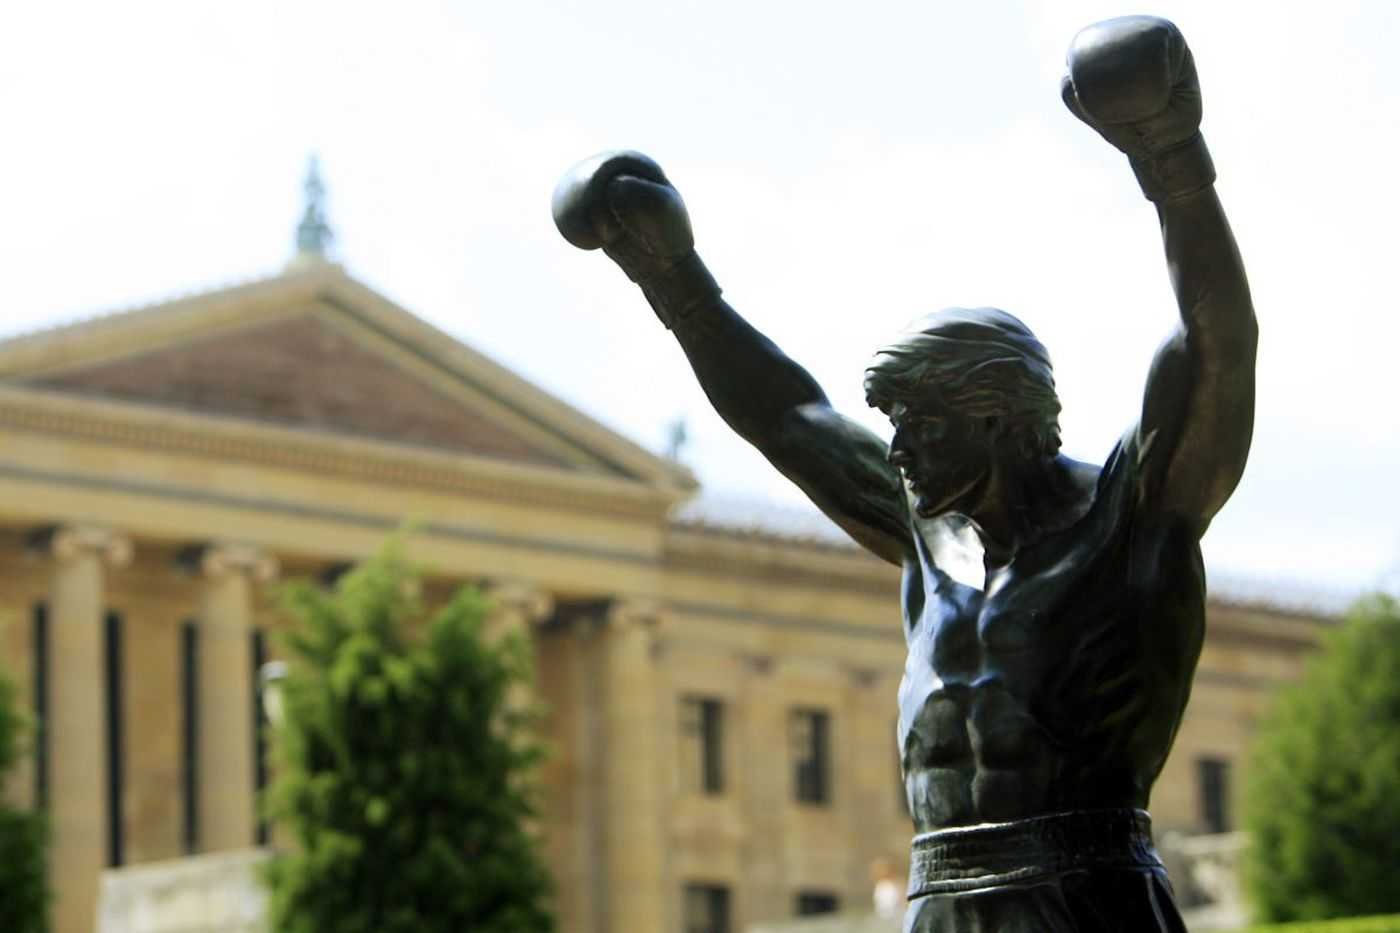 Billionaire Branson pulls a Rocky in Philly while on 'Finding My Virginity' tour